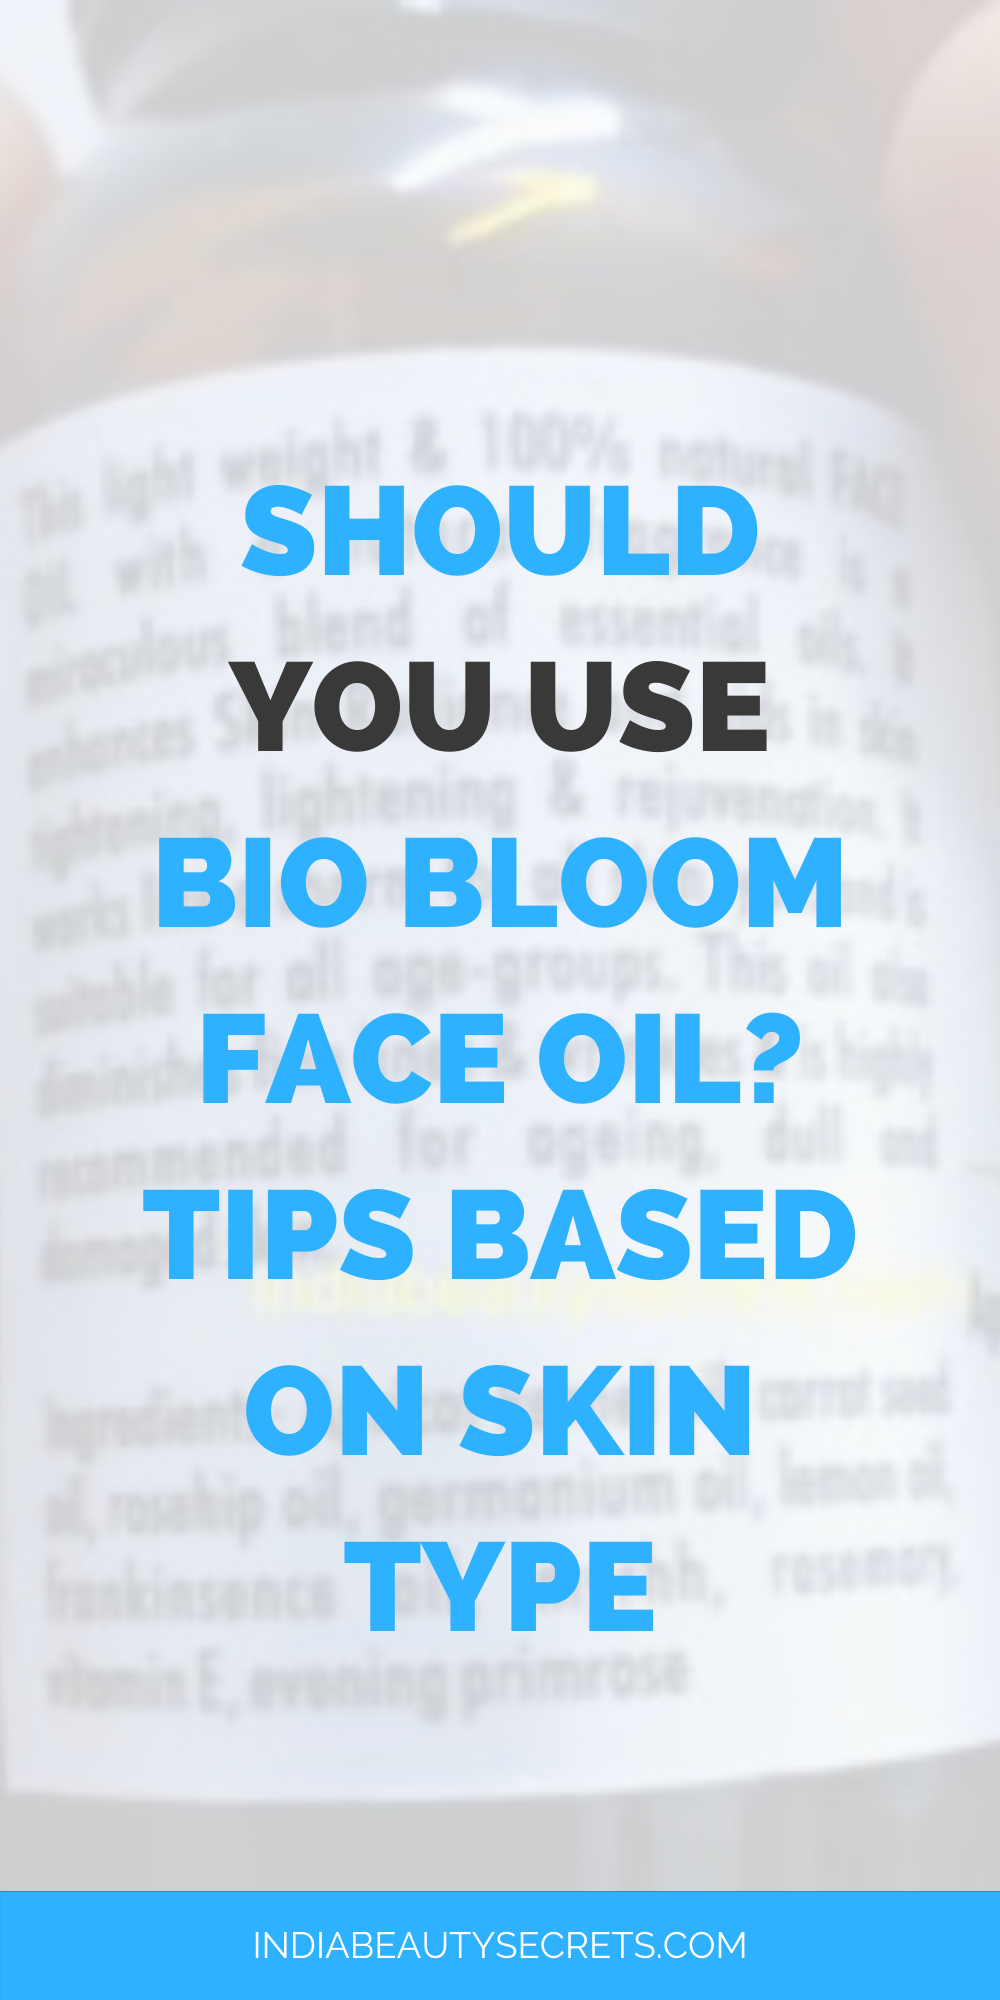 Bio Bloom Skin Care Face Oil Review India Beauty Secrets Face Products Skincare Face Oil Oil For Dry Skin